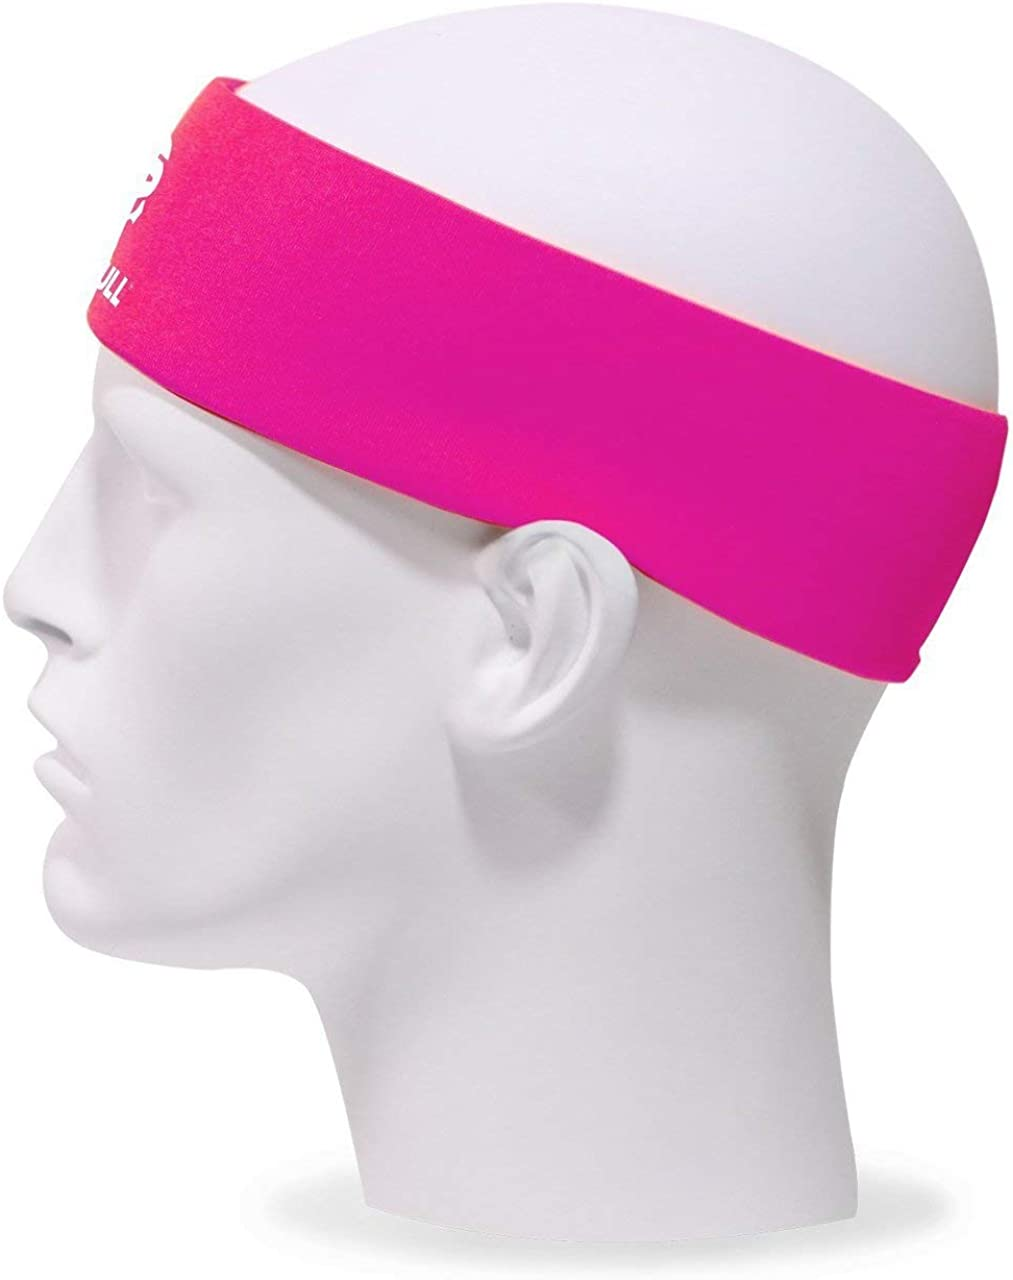 Impact-Absorbing Technology Moisture-Wicking Sweatband One Size Fits Most 2nd Skull Protective Sports Headband